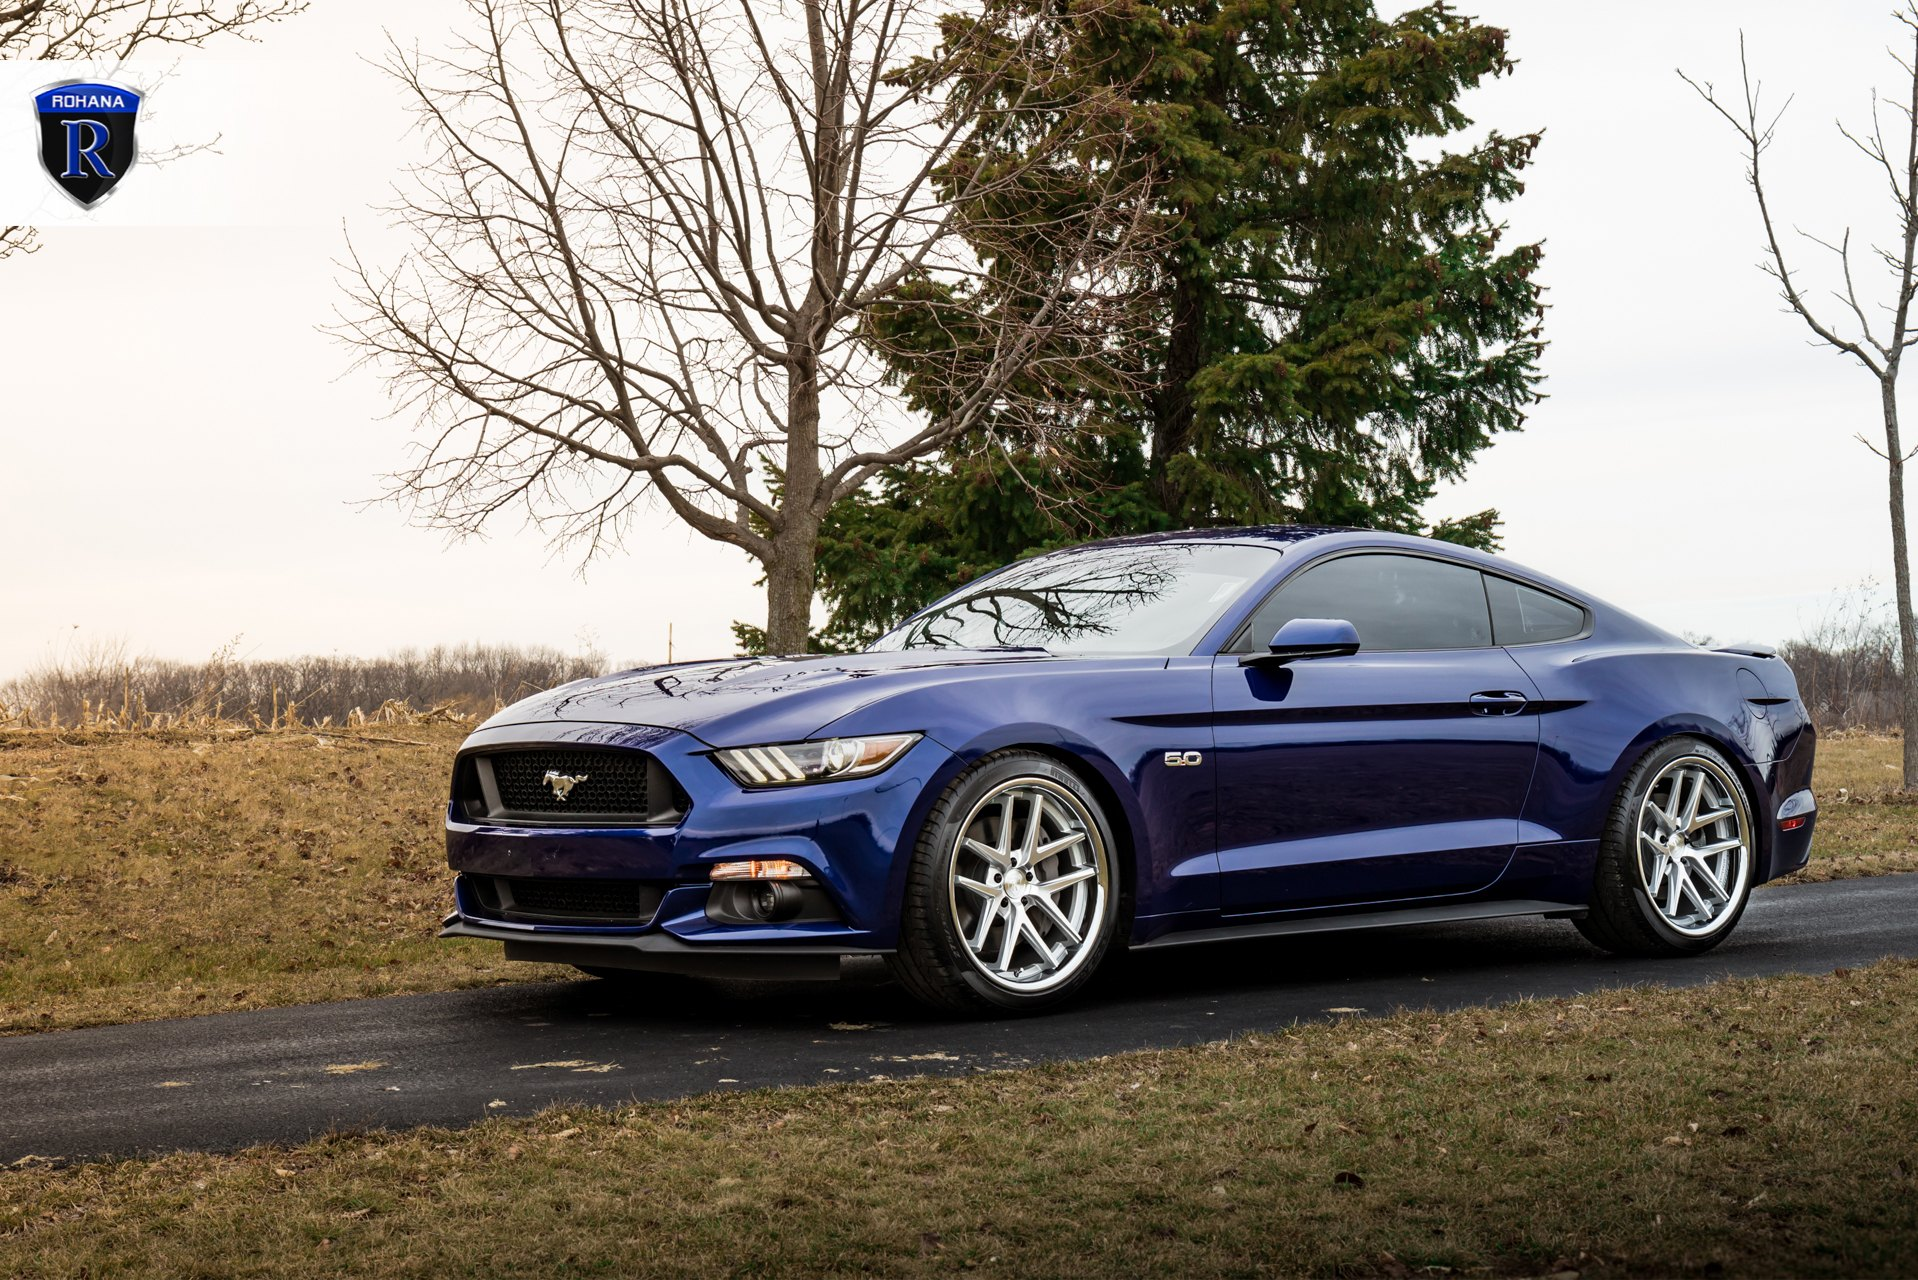 Dark Blue Ford Mustang Enhanced With Projector Headlights And Rohana